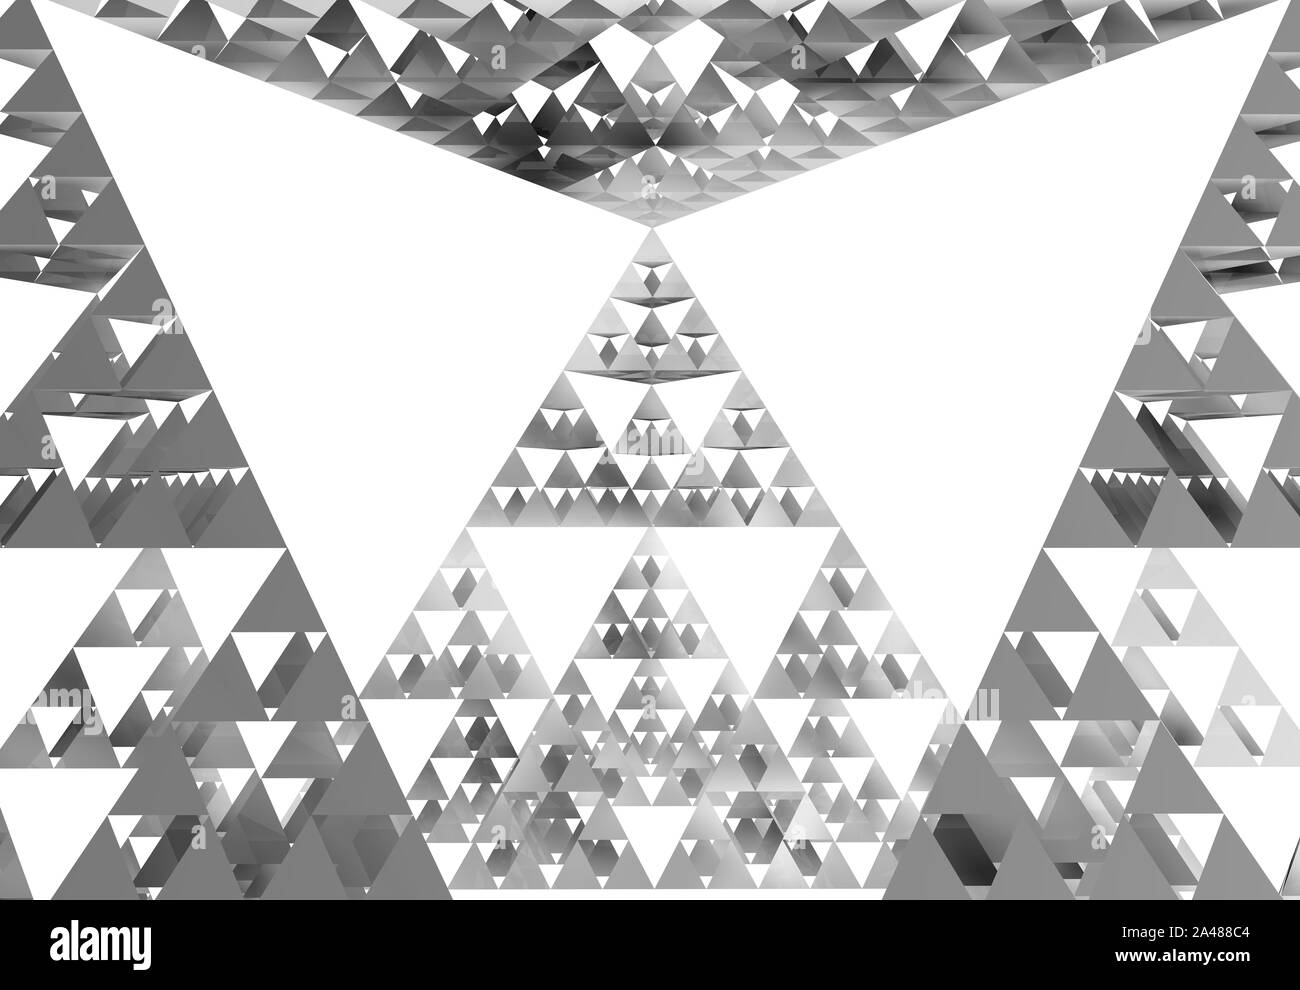 Equilateral Triangle Stock Photos & Equilateral Triangle